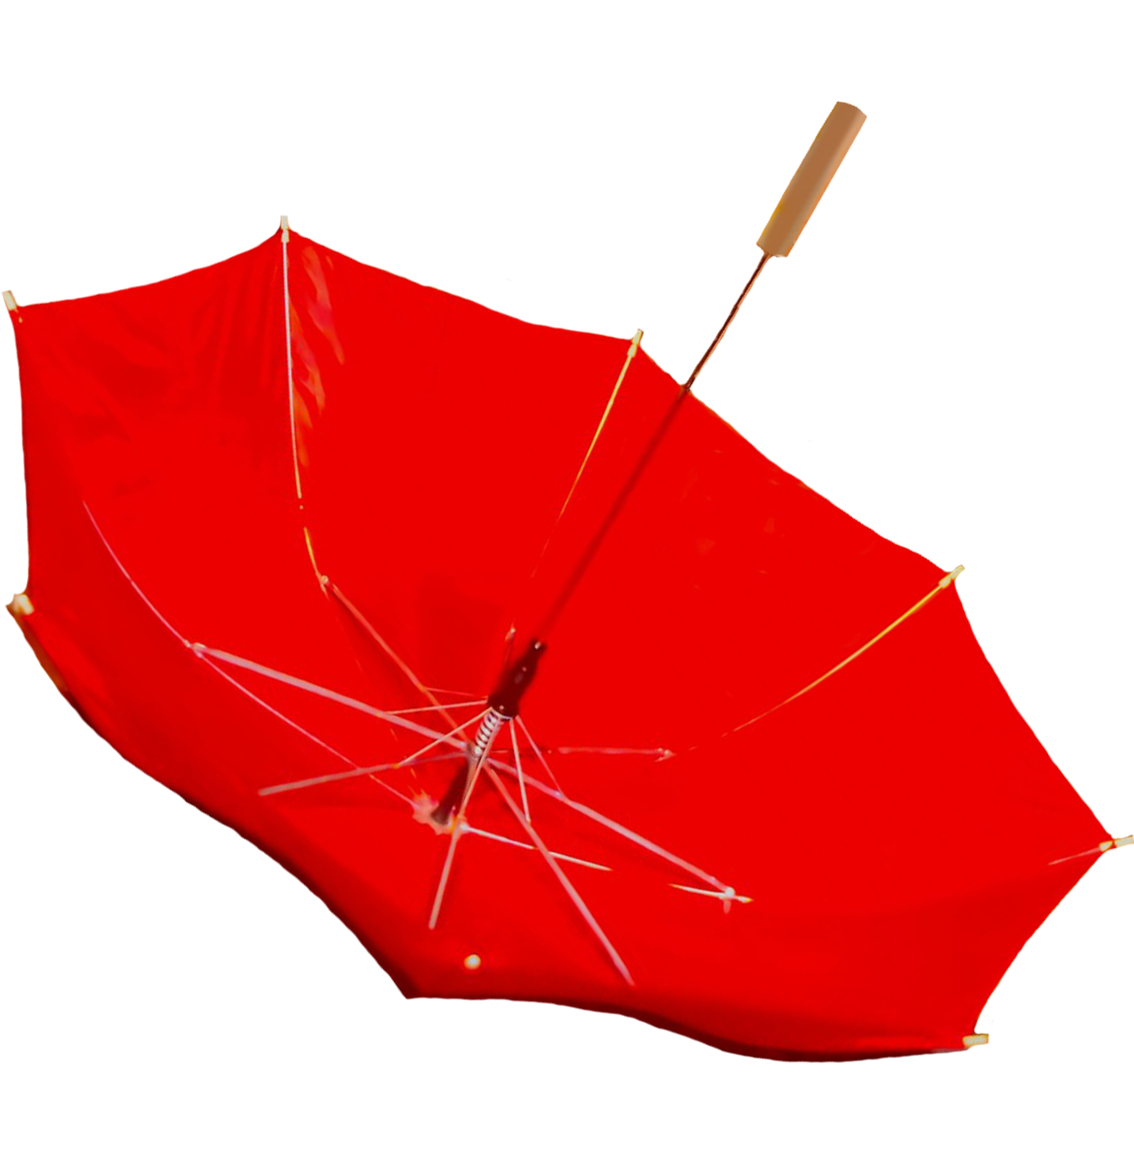 red umbrella blown upside down